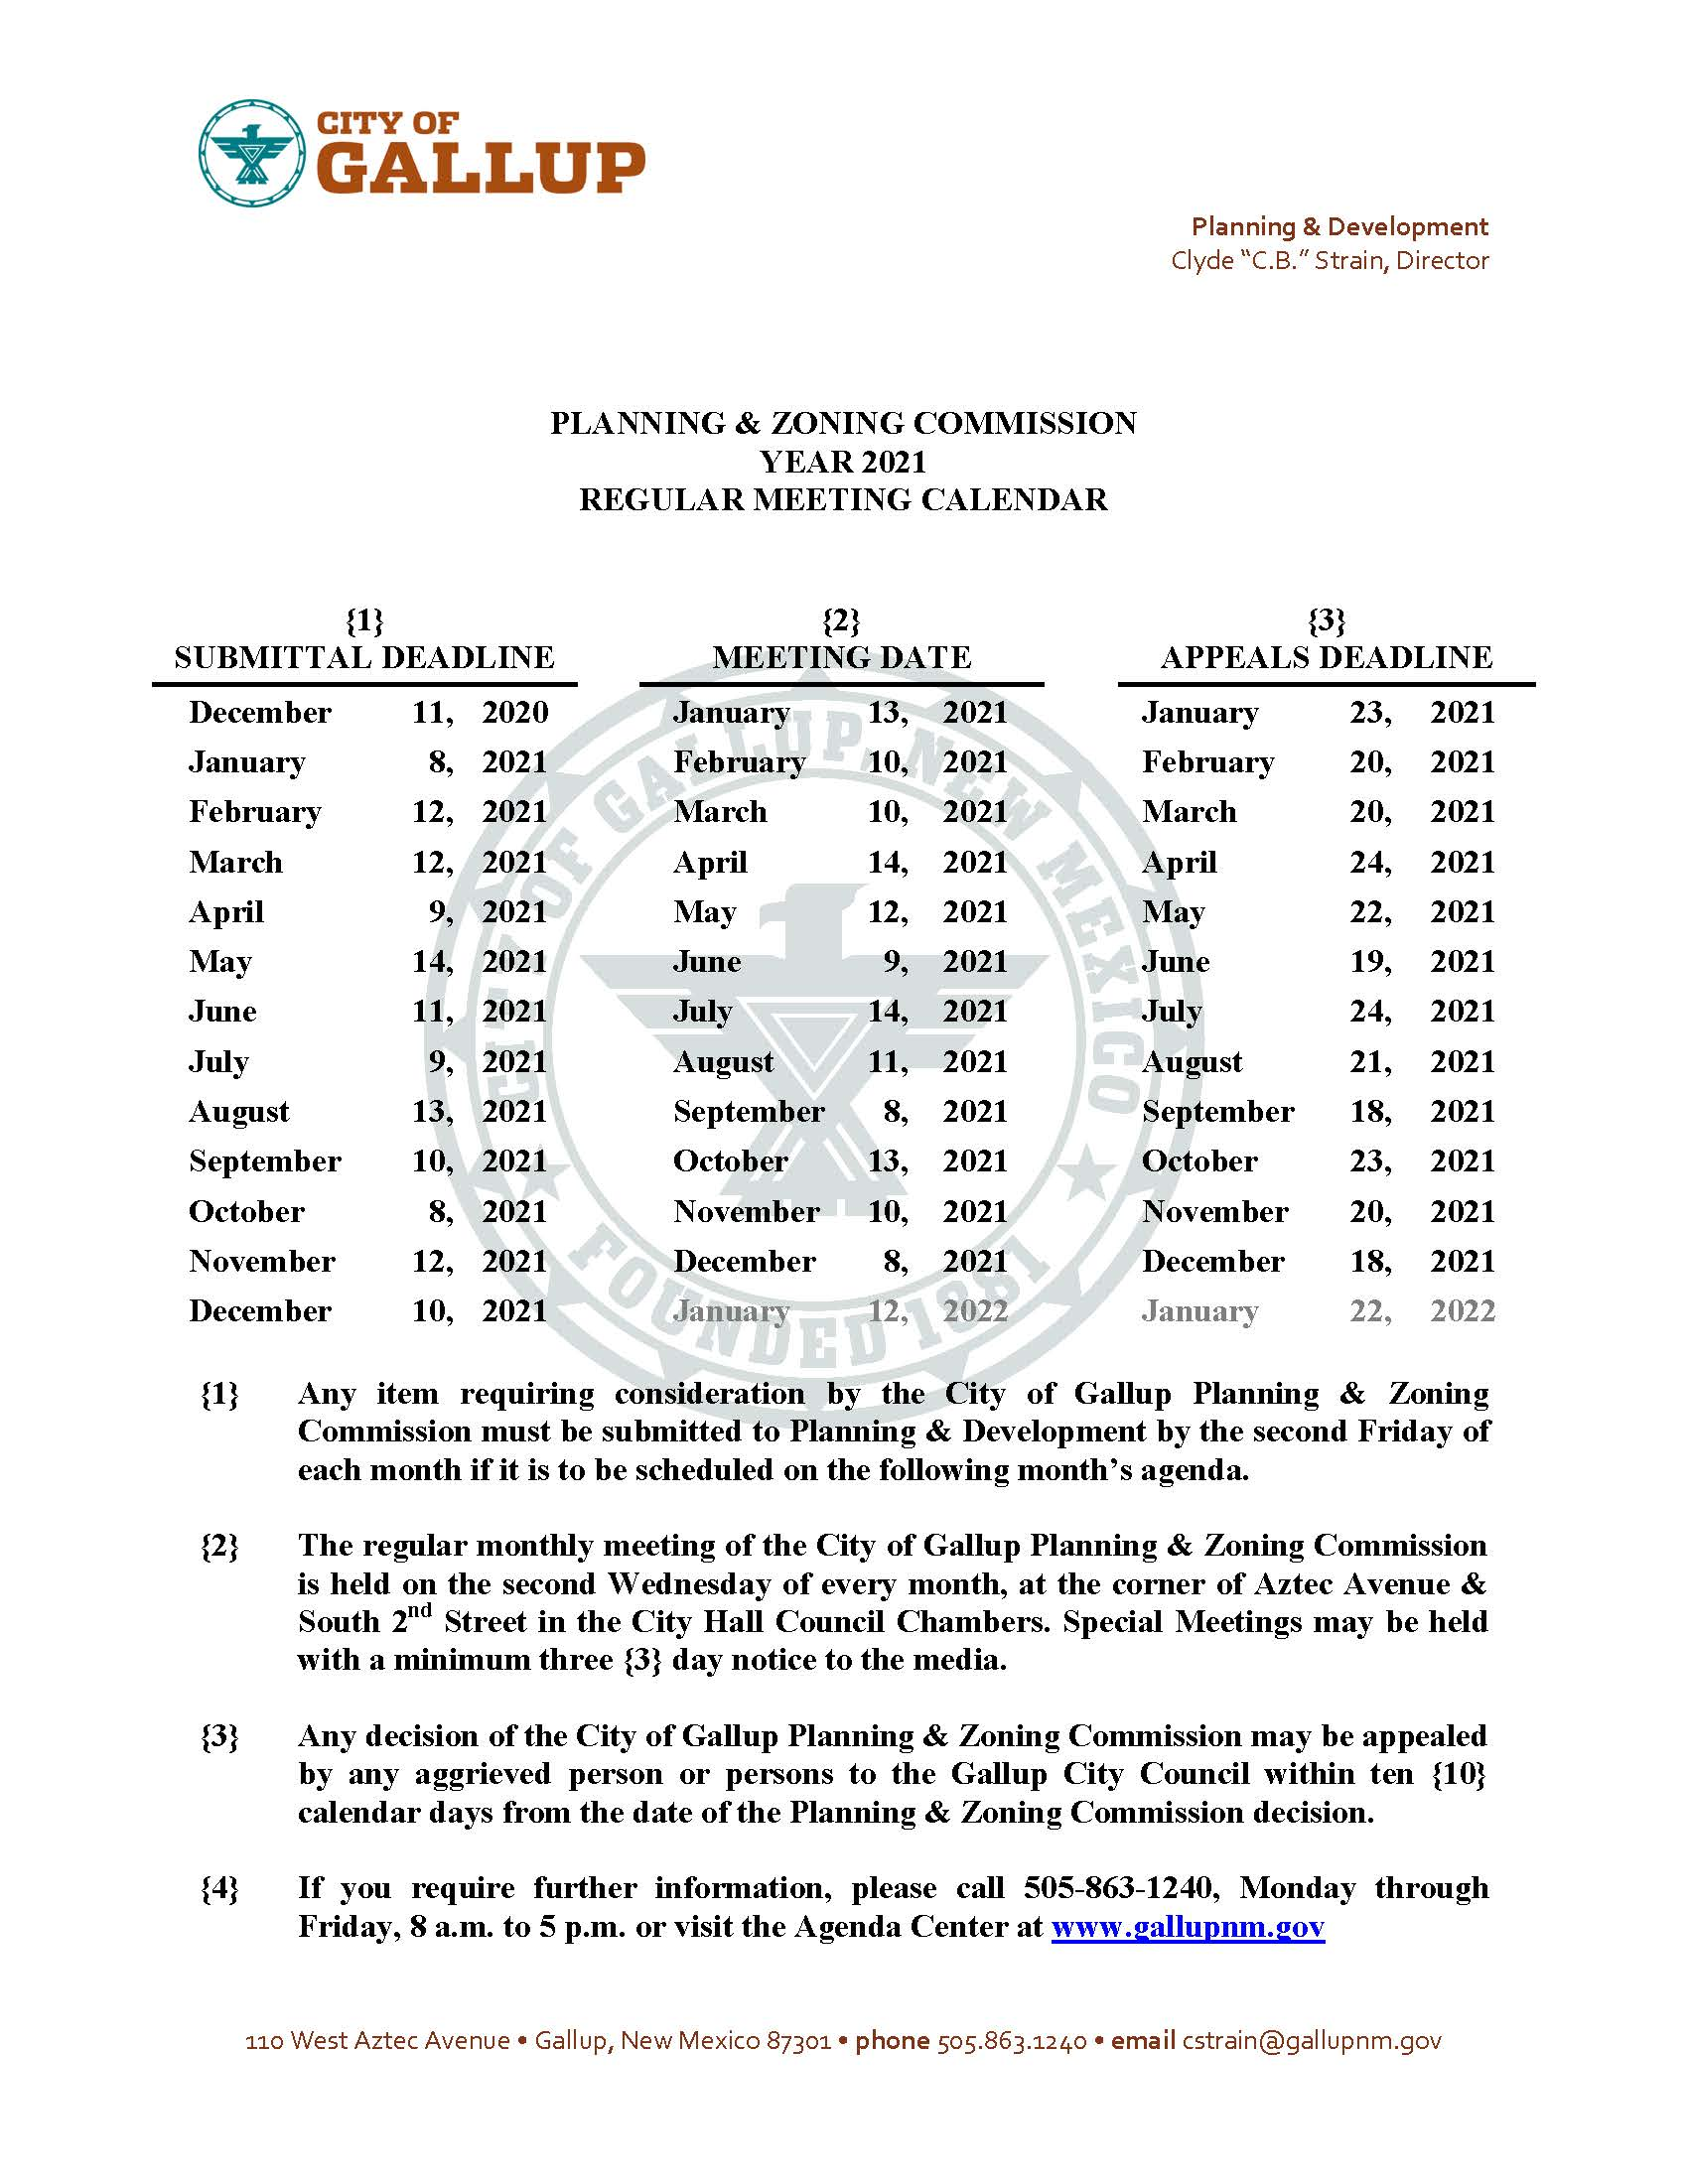 2021 Planning & Zoning Commission Regular Meeting Calendar